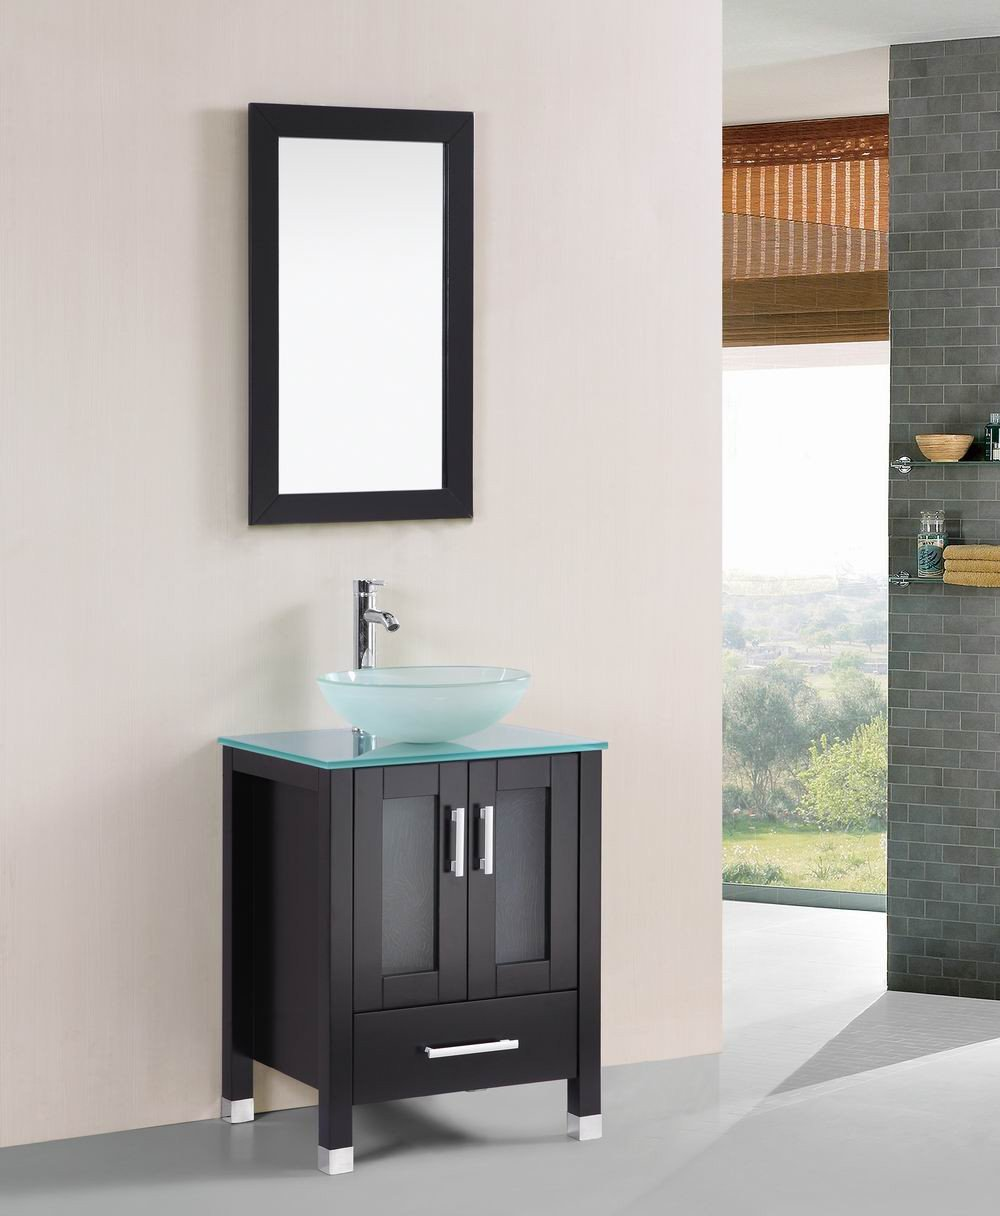 bathroom l vanity h inch vanities bowl dp x designs set with com d w sink amazon espresso belvedere raised